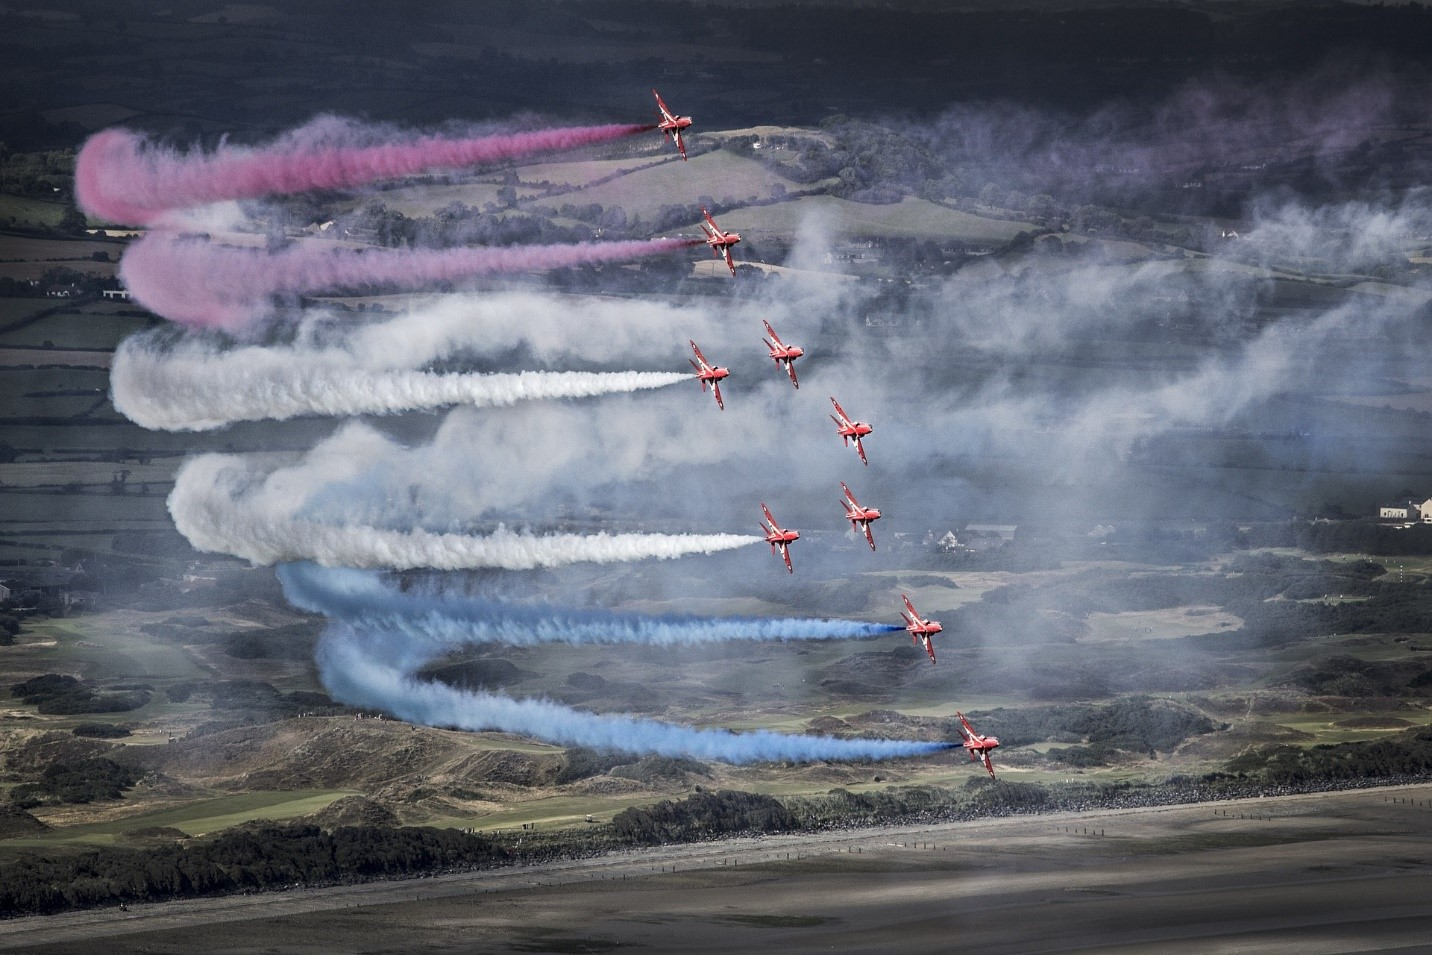 jets with colored streams